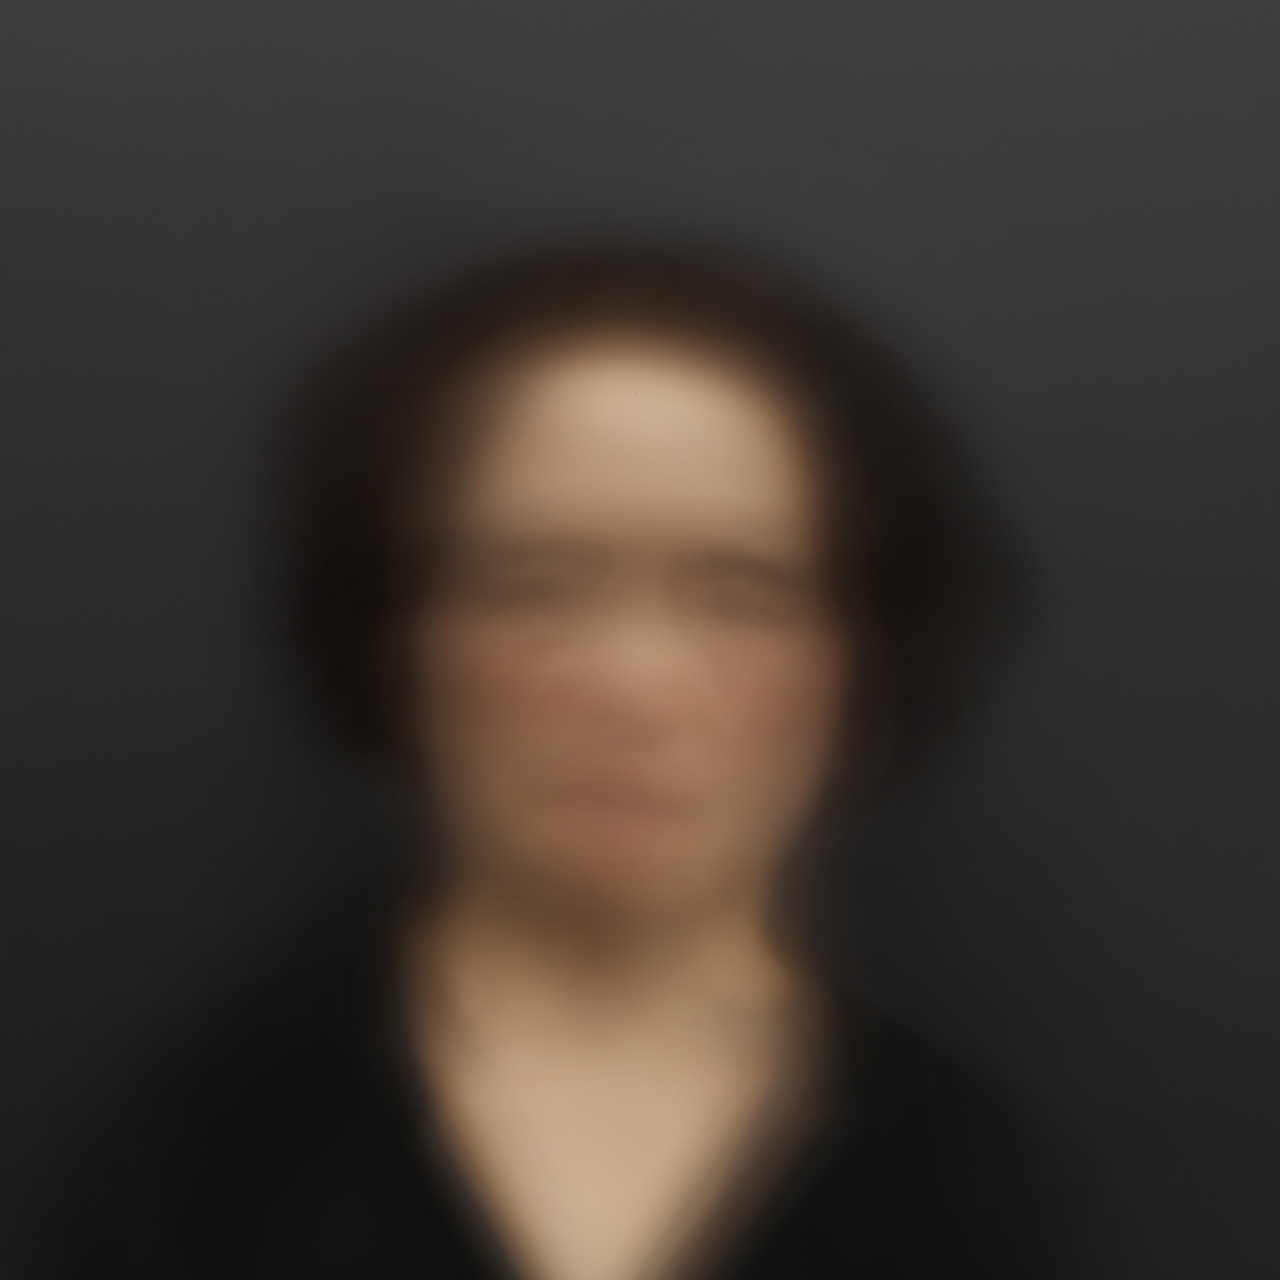 CYRUS TANG   I am not Madam Bovary (140 minutes)  2018 Archival pigment print 65 x 65 cm